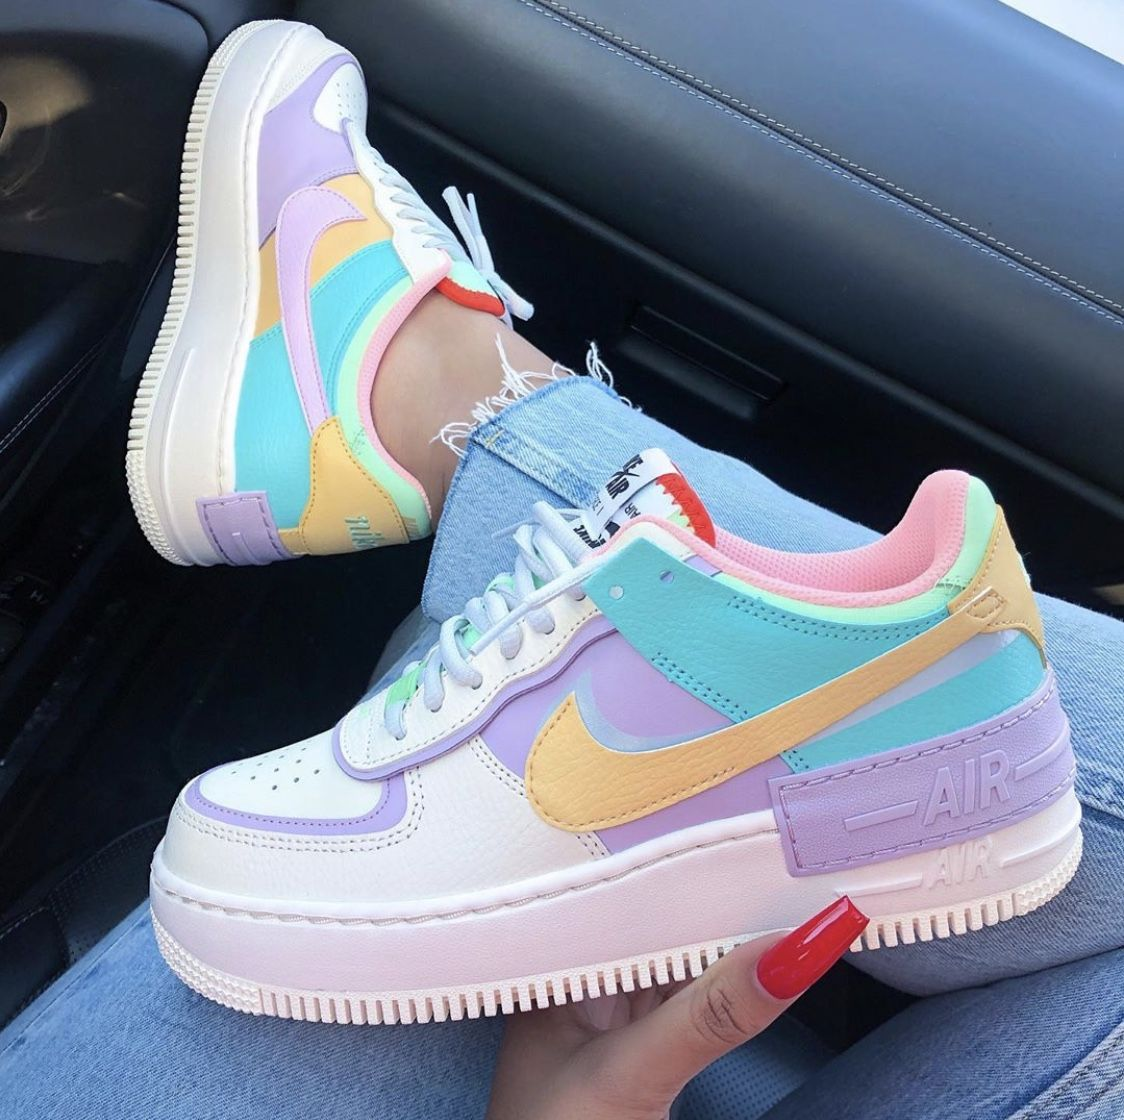 Nike Air Force 1 Shadow Pastel Multi Funny Shoes Sneakers Fashion Fresh Shoes